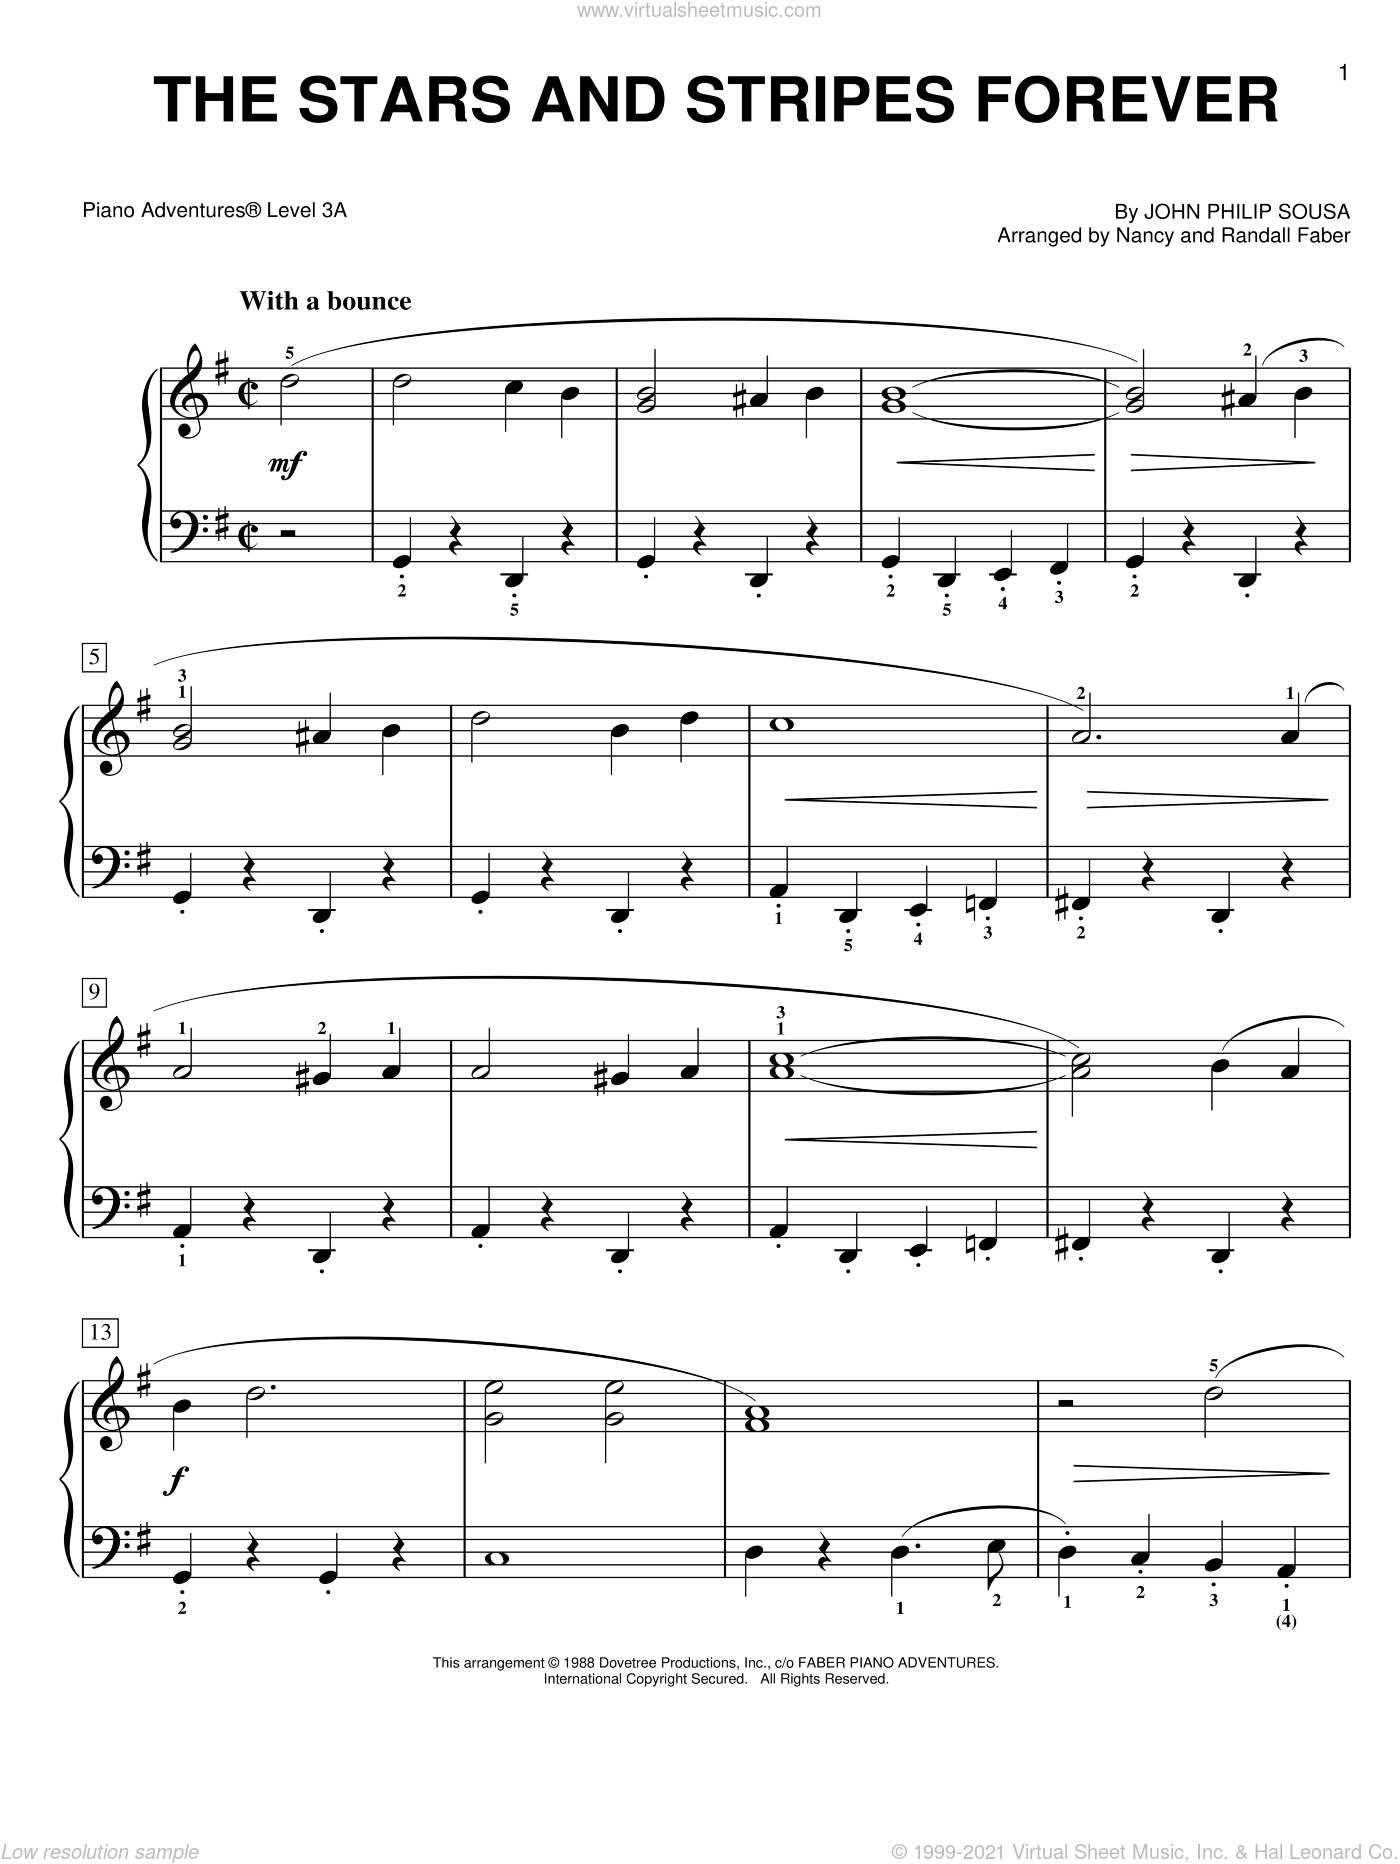 The Stars and Stripes Forever sheet music for piano solo by Nancy and Randall Faber